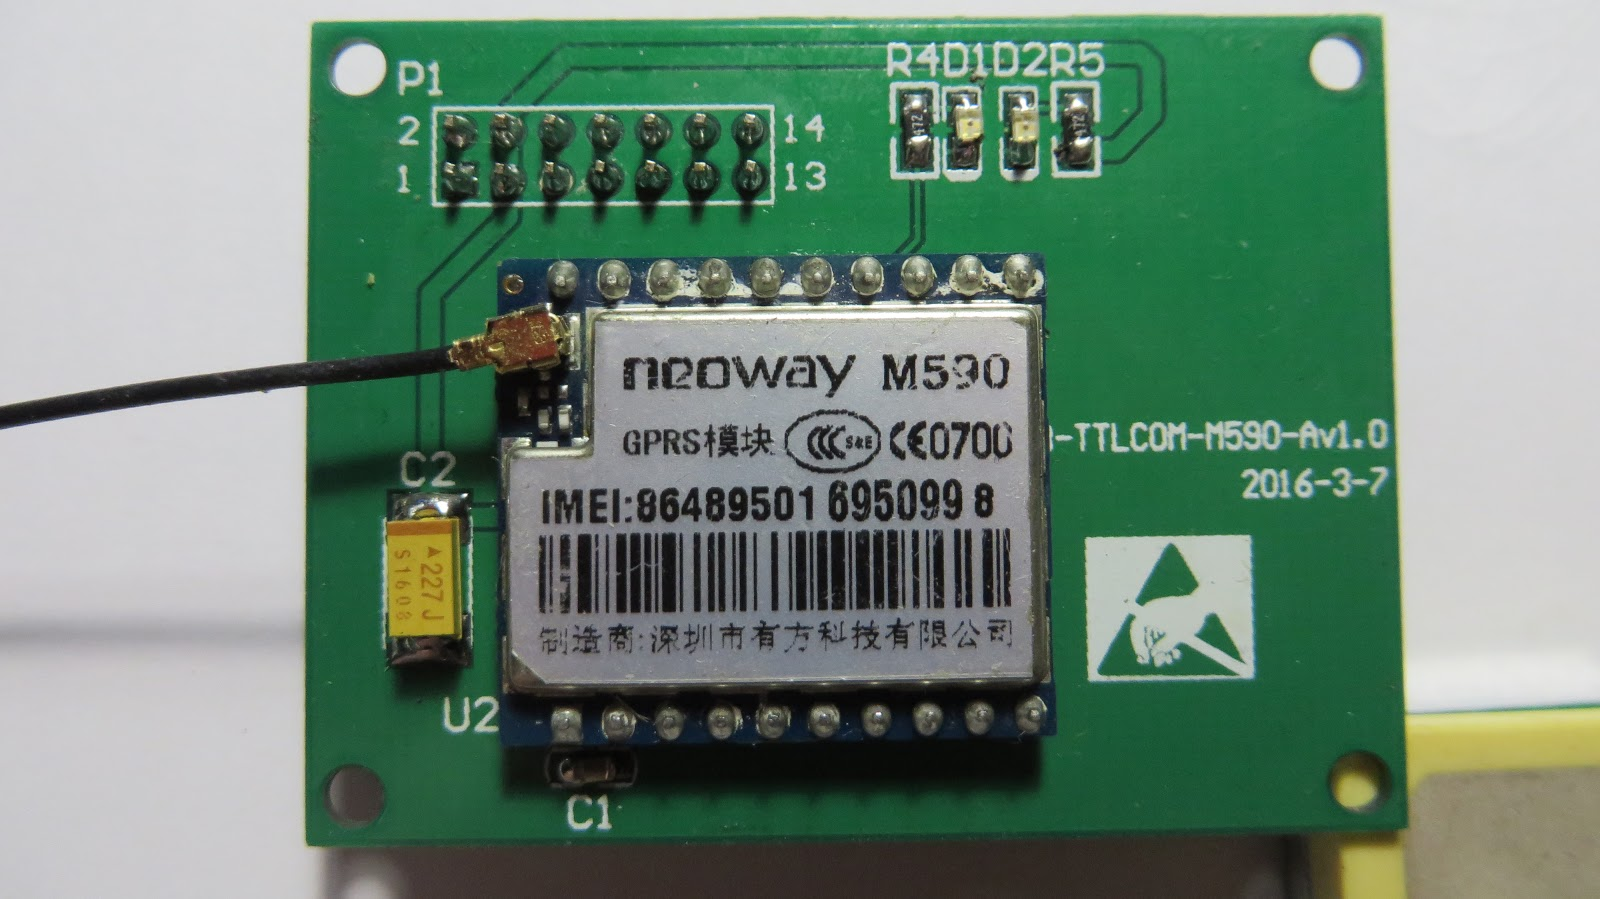 SMS GPS-tracker with Neoway M590 and ublox NEO-6 part 1  Gathering